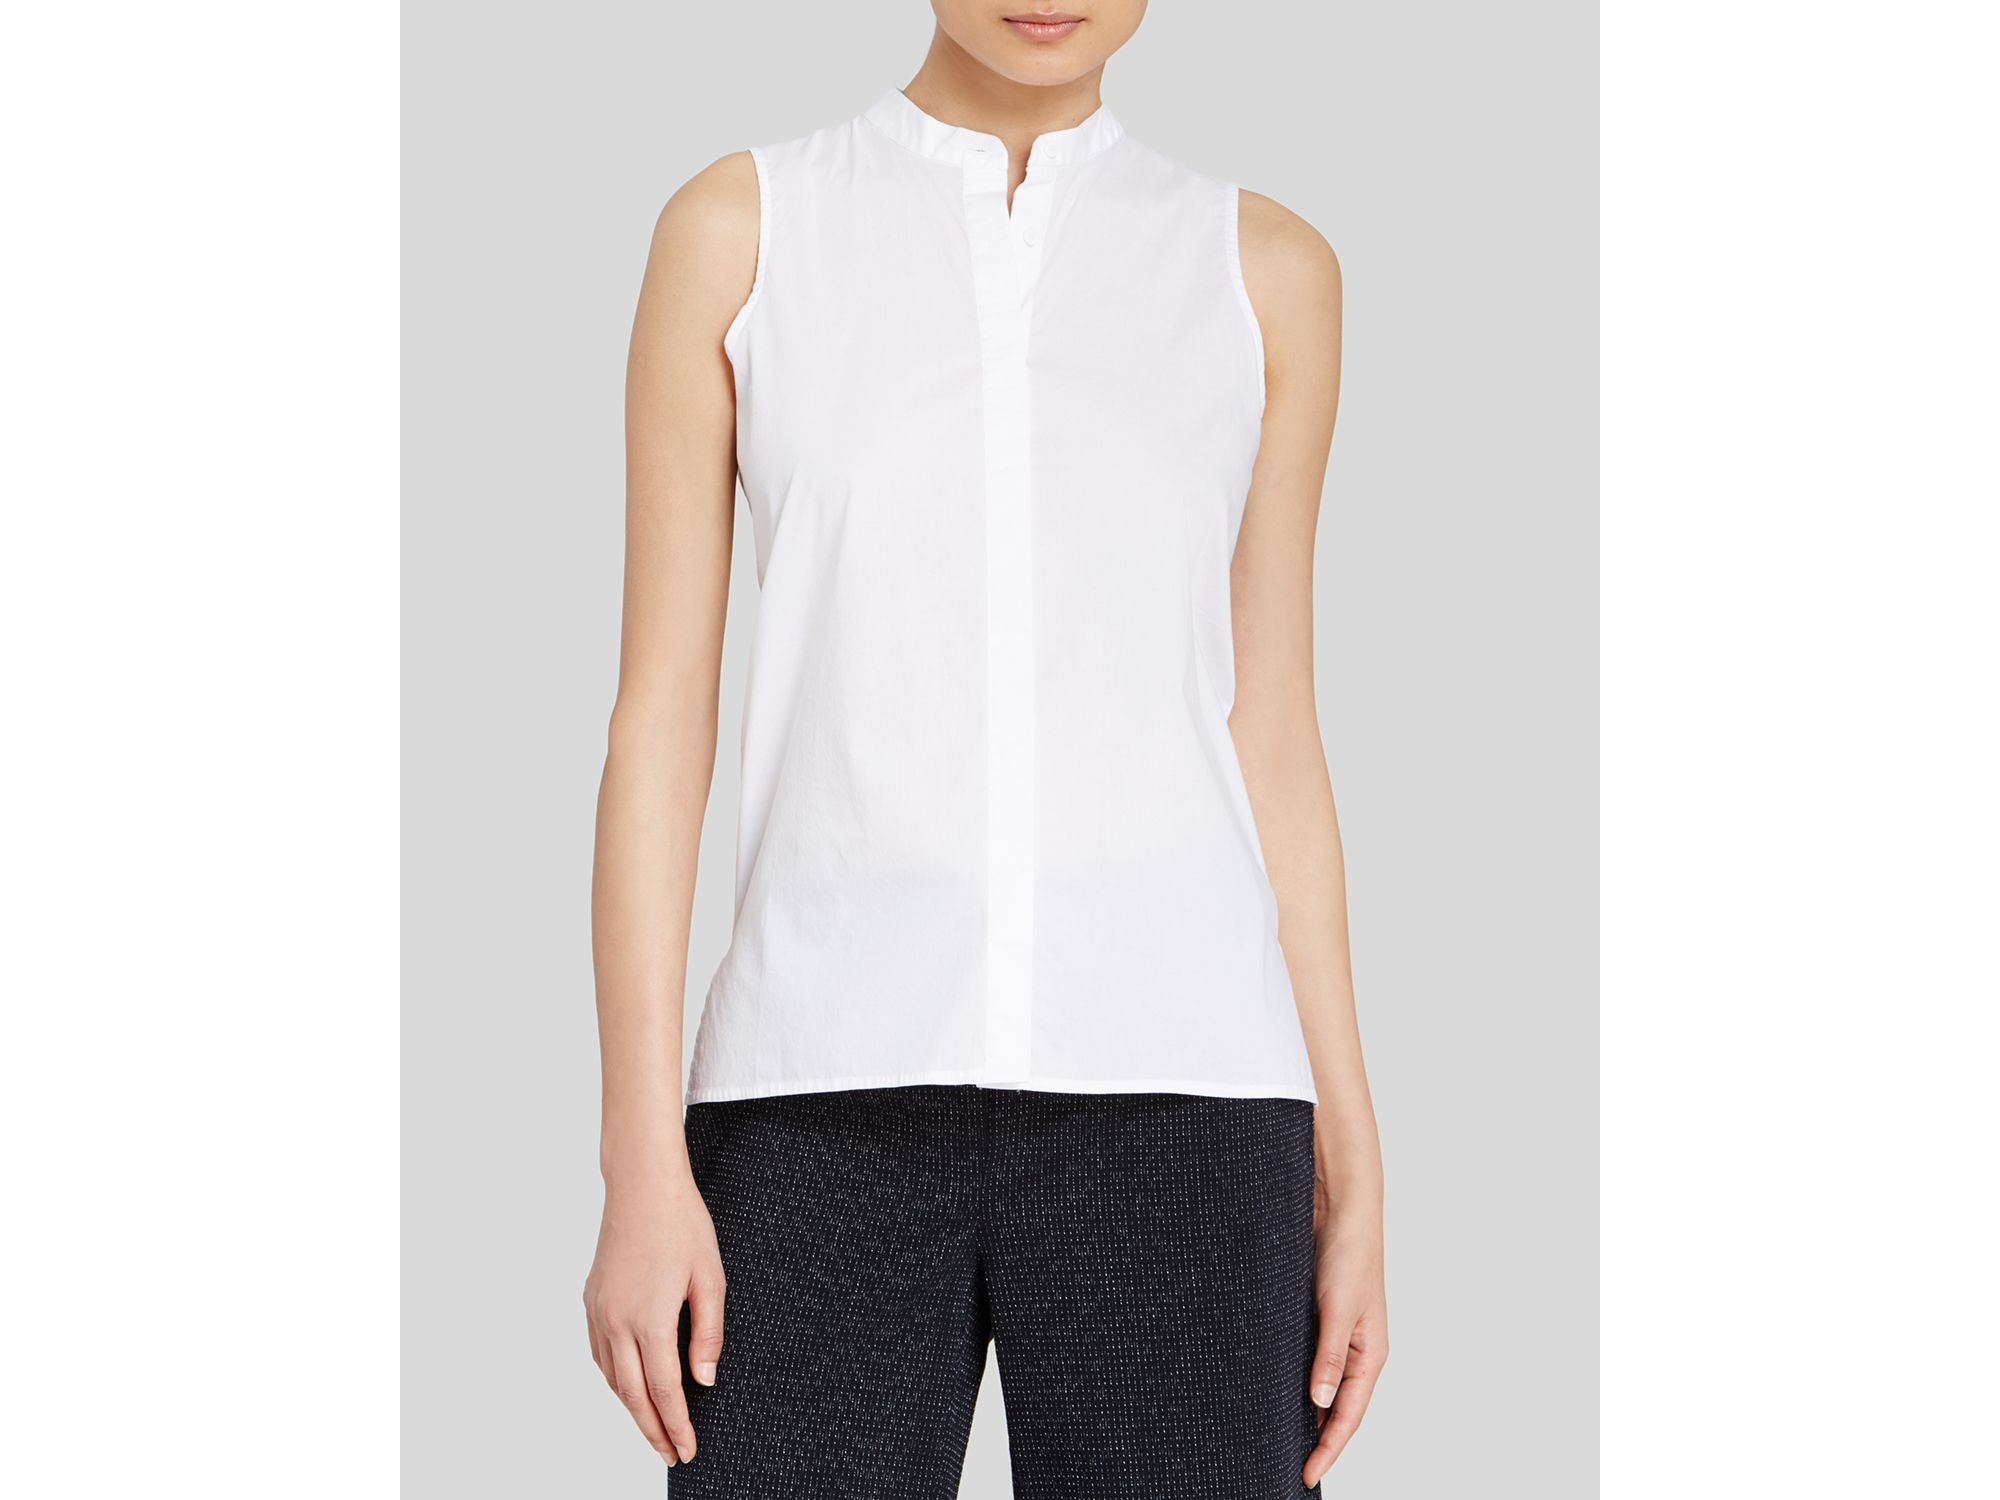 988dbee1a03bfe Eileen Fisher Mandarin Collar Sleeveless Shirt in White - Lyst